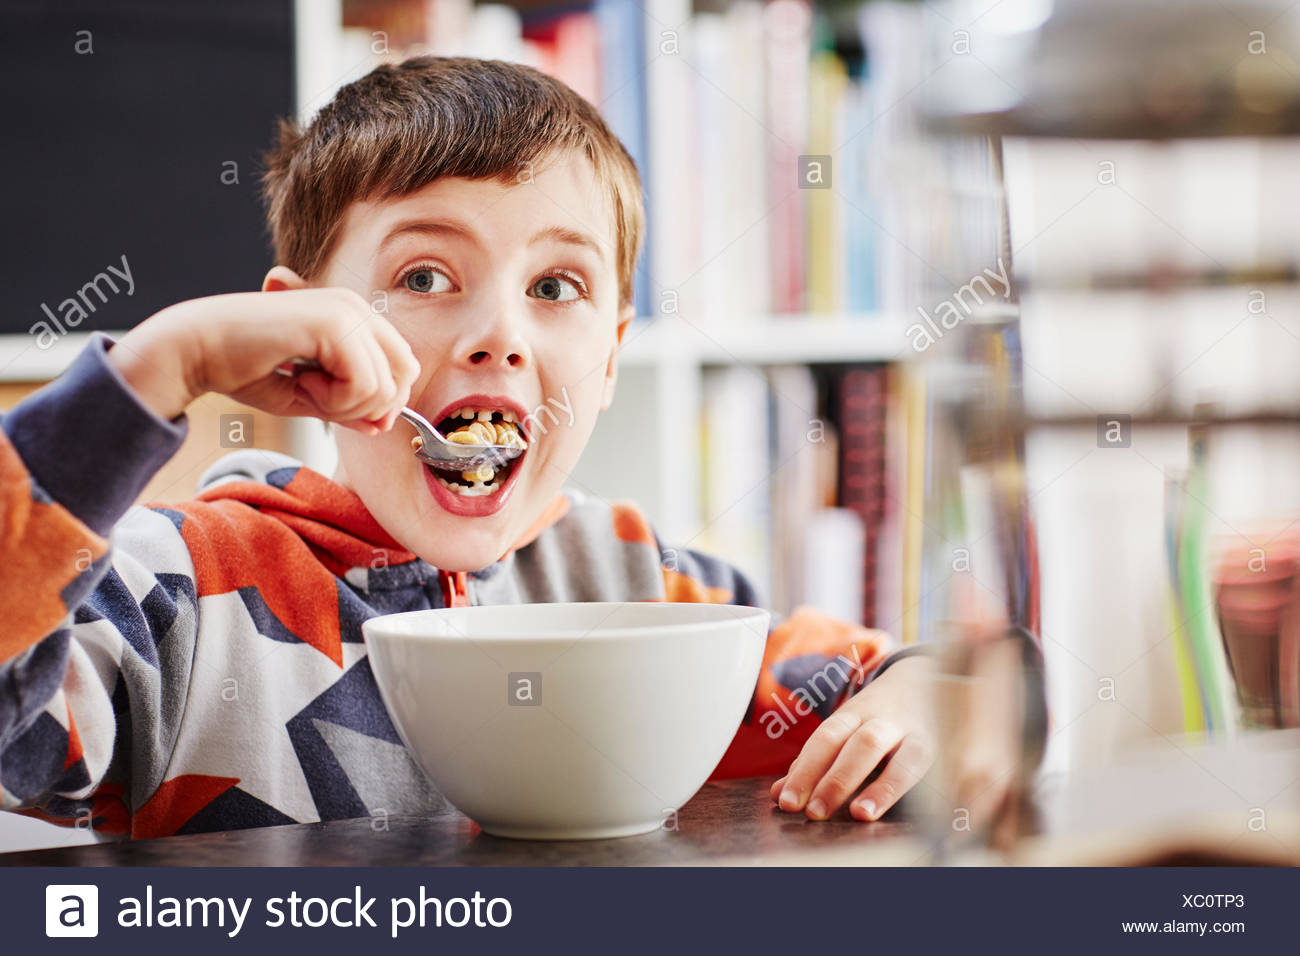 Young boy eating breakfast - Stock Image